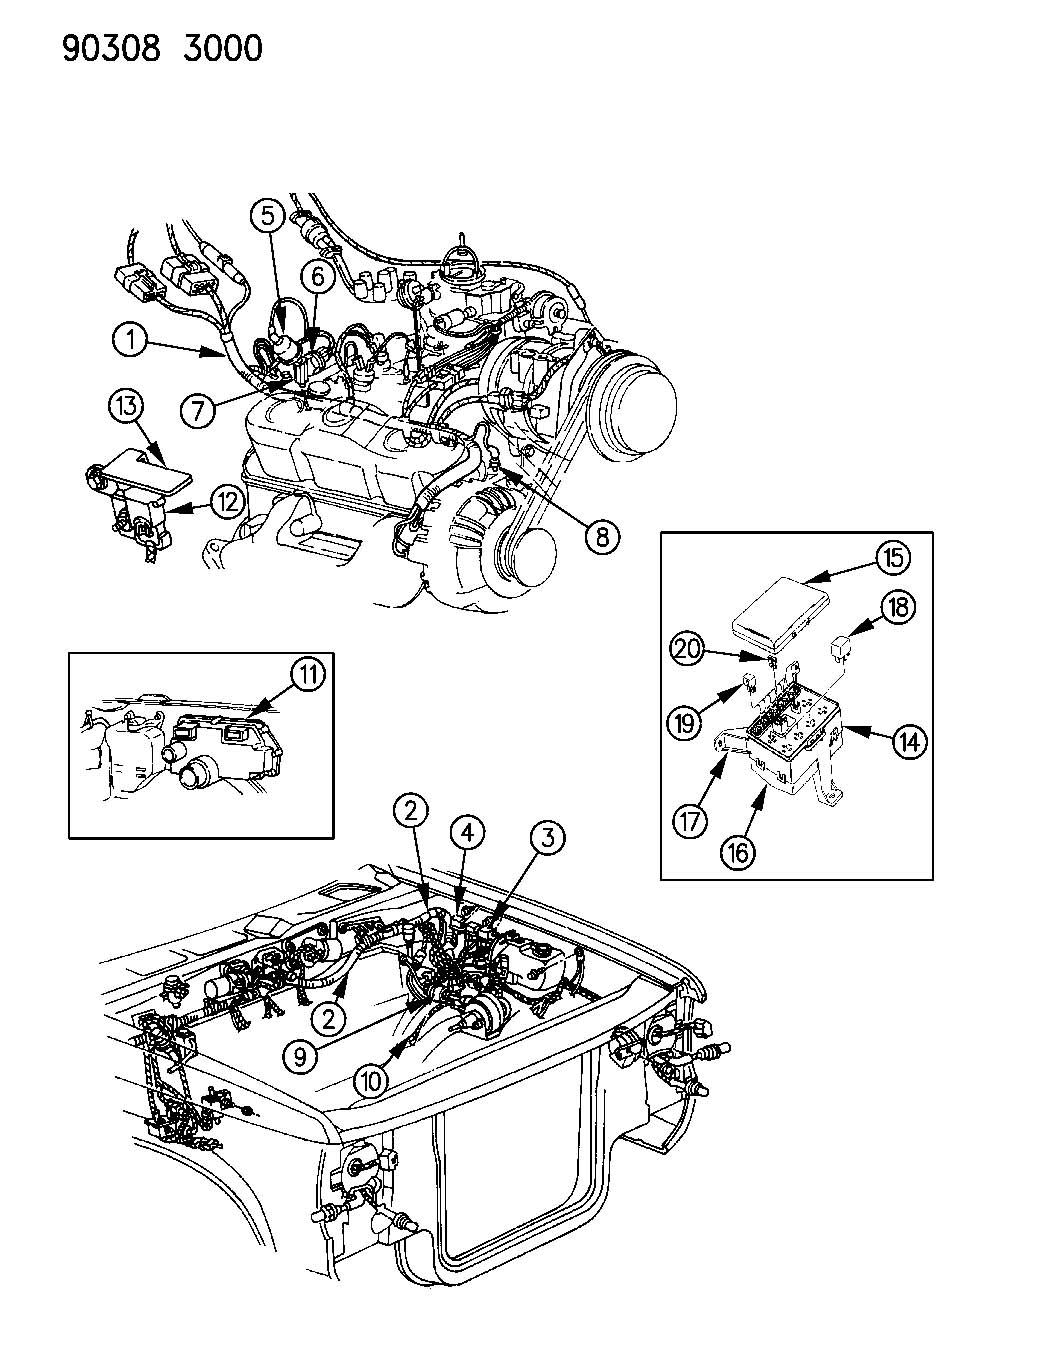 Diagram WIRING--ENGINE-FRONT END & RELATED PARTS N-MODELS 6-CYLINDER ENGINE for your Dodge